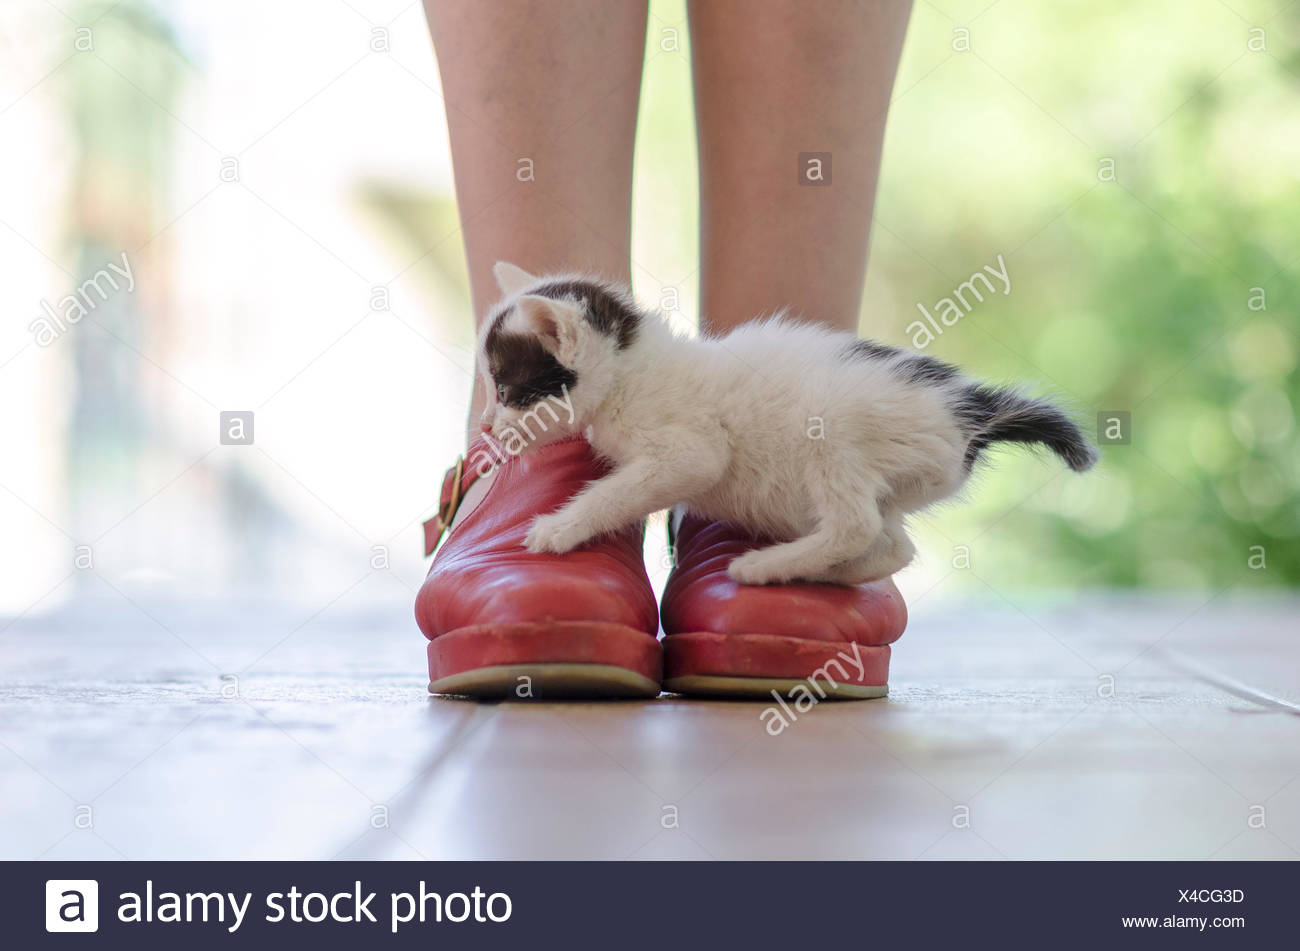 Kitten over Red Shoes - Stock Image